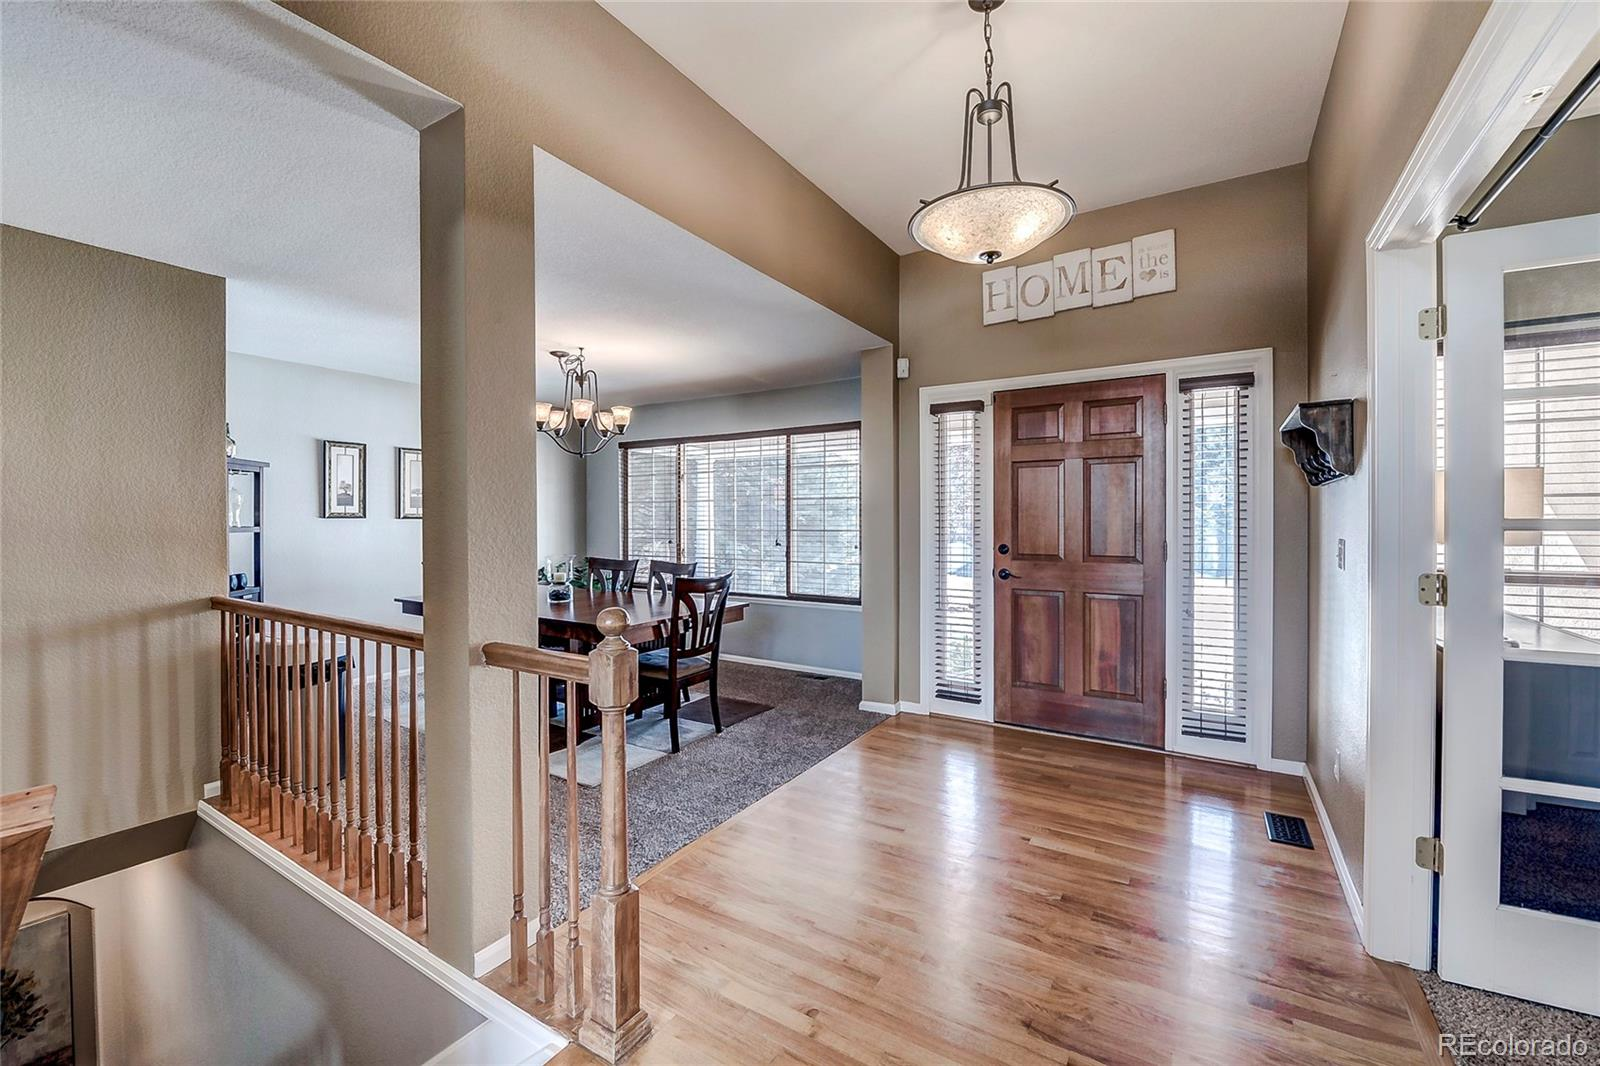 MLS# 4951528 - 3 - 15781 W 66th Place, Arvada, CO 80007